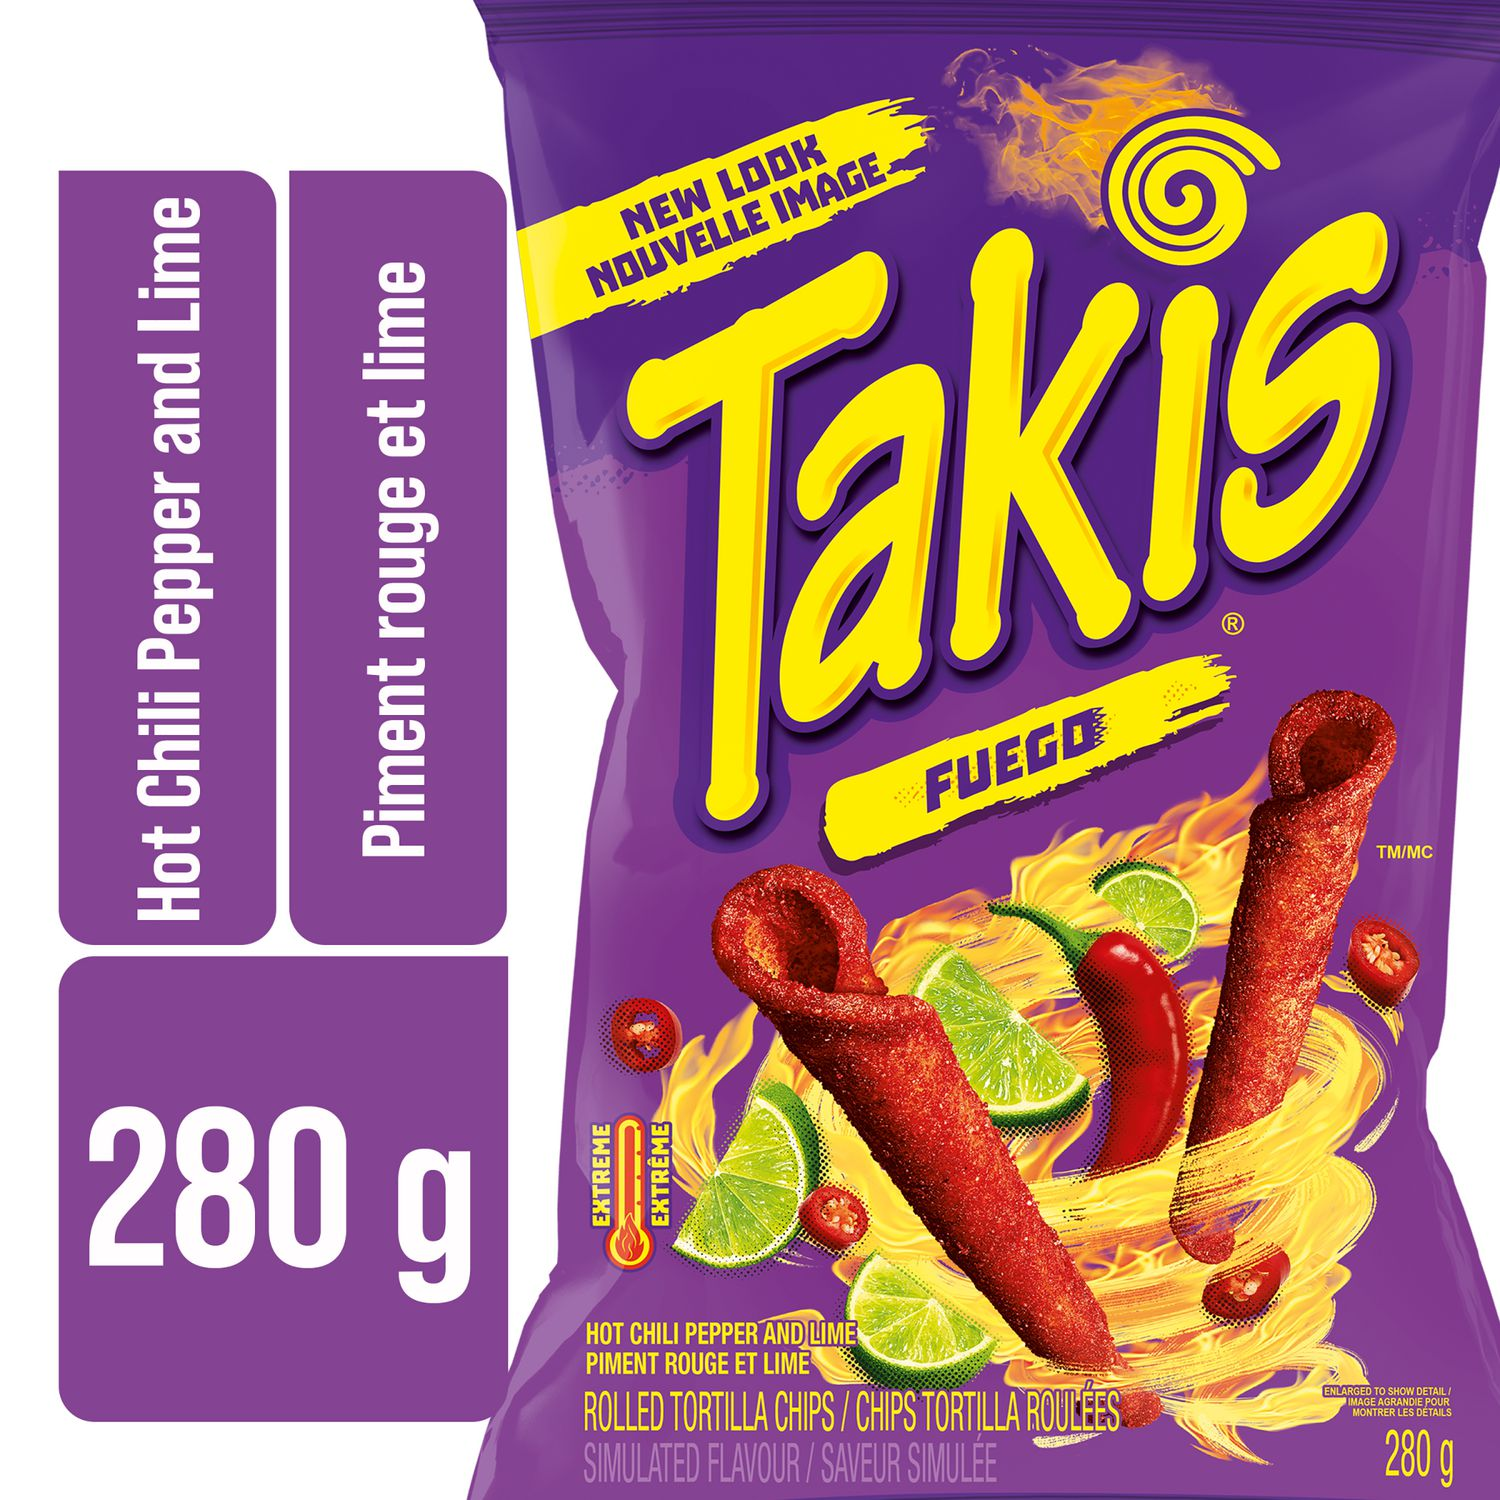 Takis Fuego Hot Chili Pepper And Lime Flavoured Rolled Tortilla